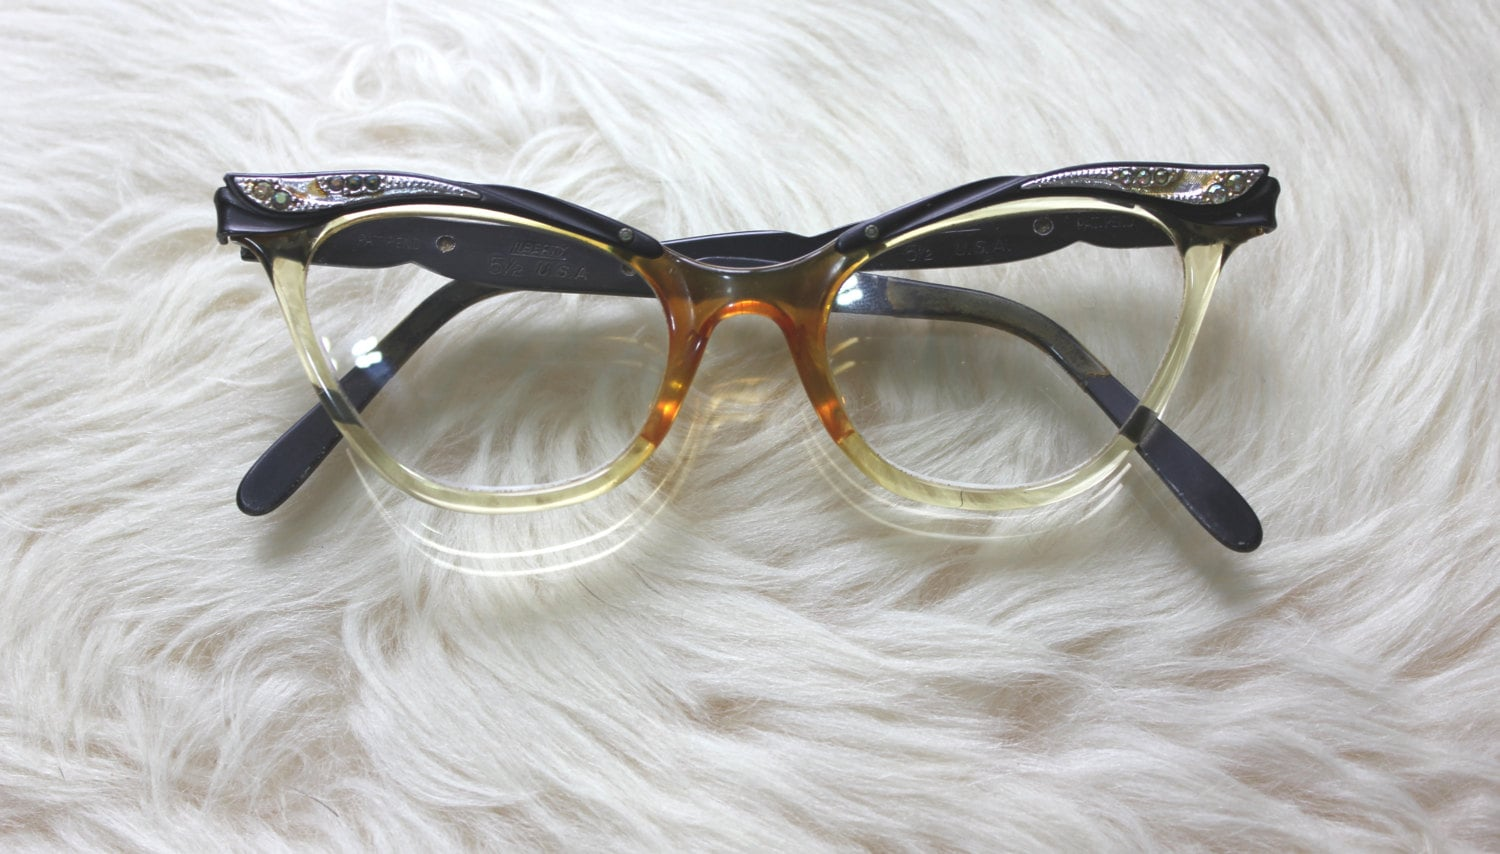 Glasses Frame Discoloration : 1950s cat eye prescription eye glasses: Marilyn